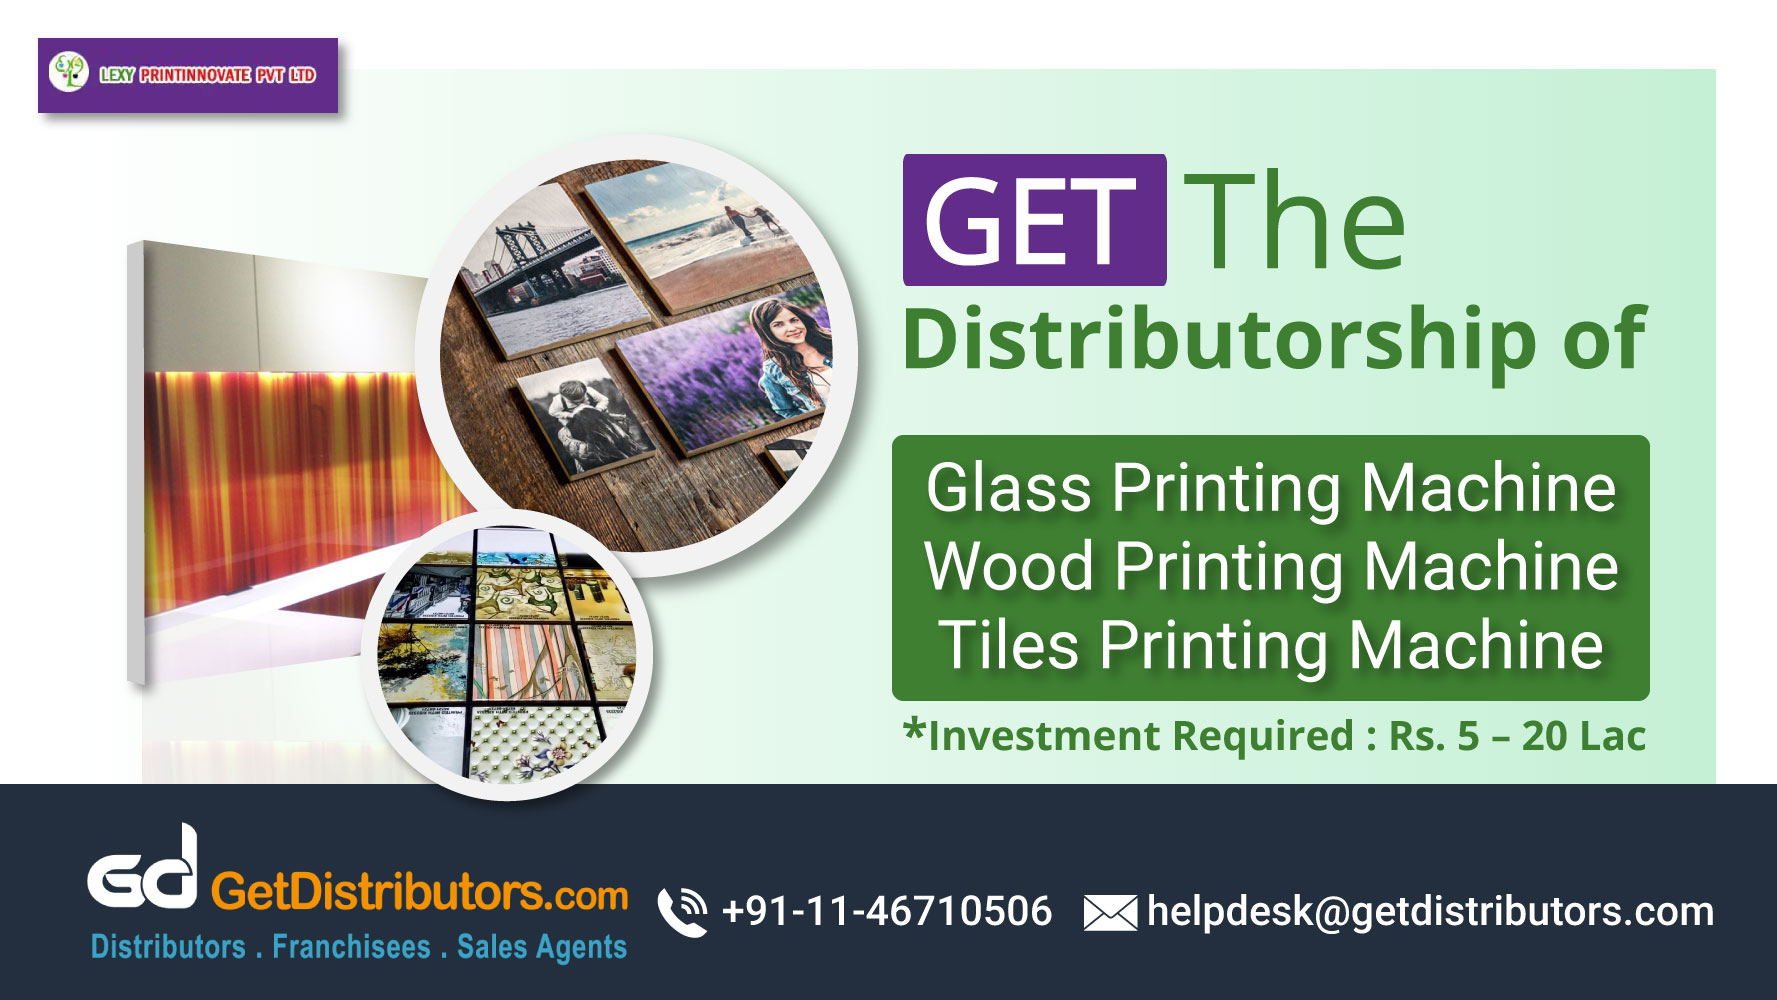 Tiles, Glass And Wood Printing Machine At Affordable Rates